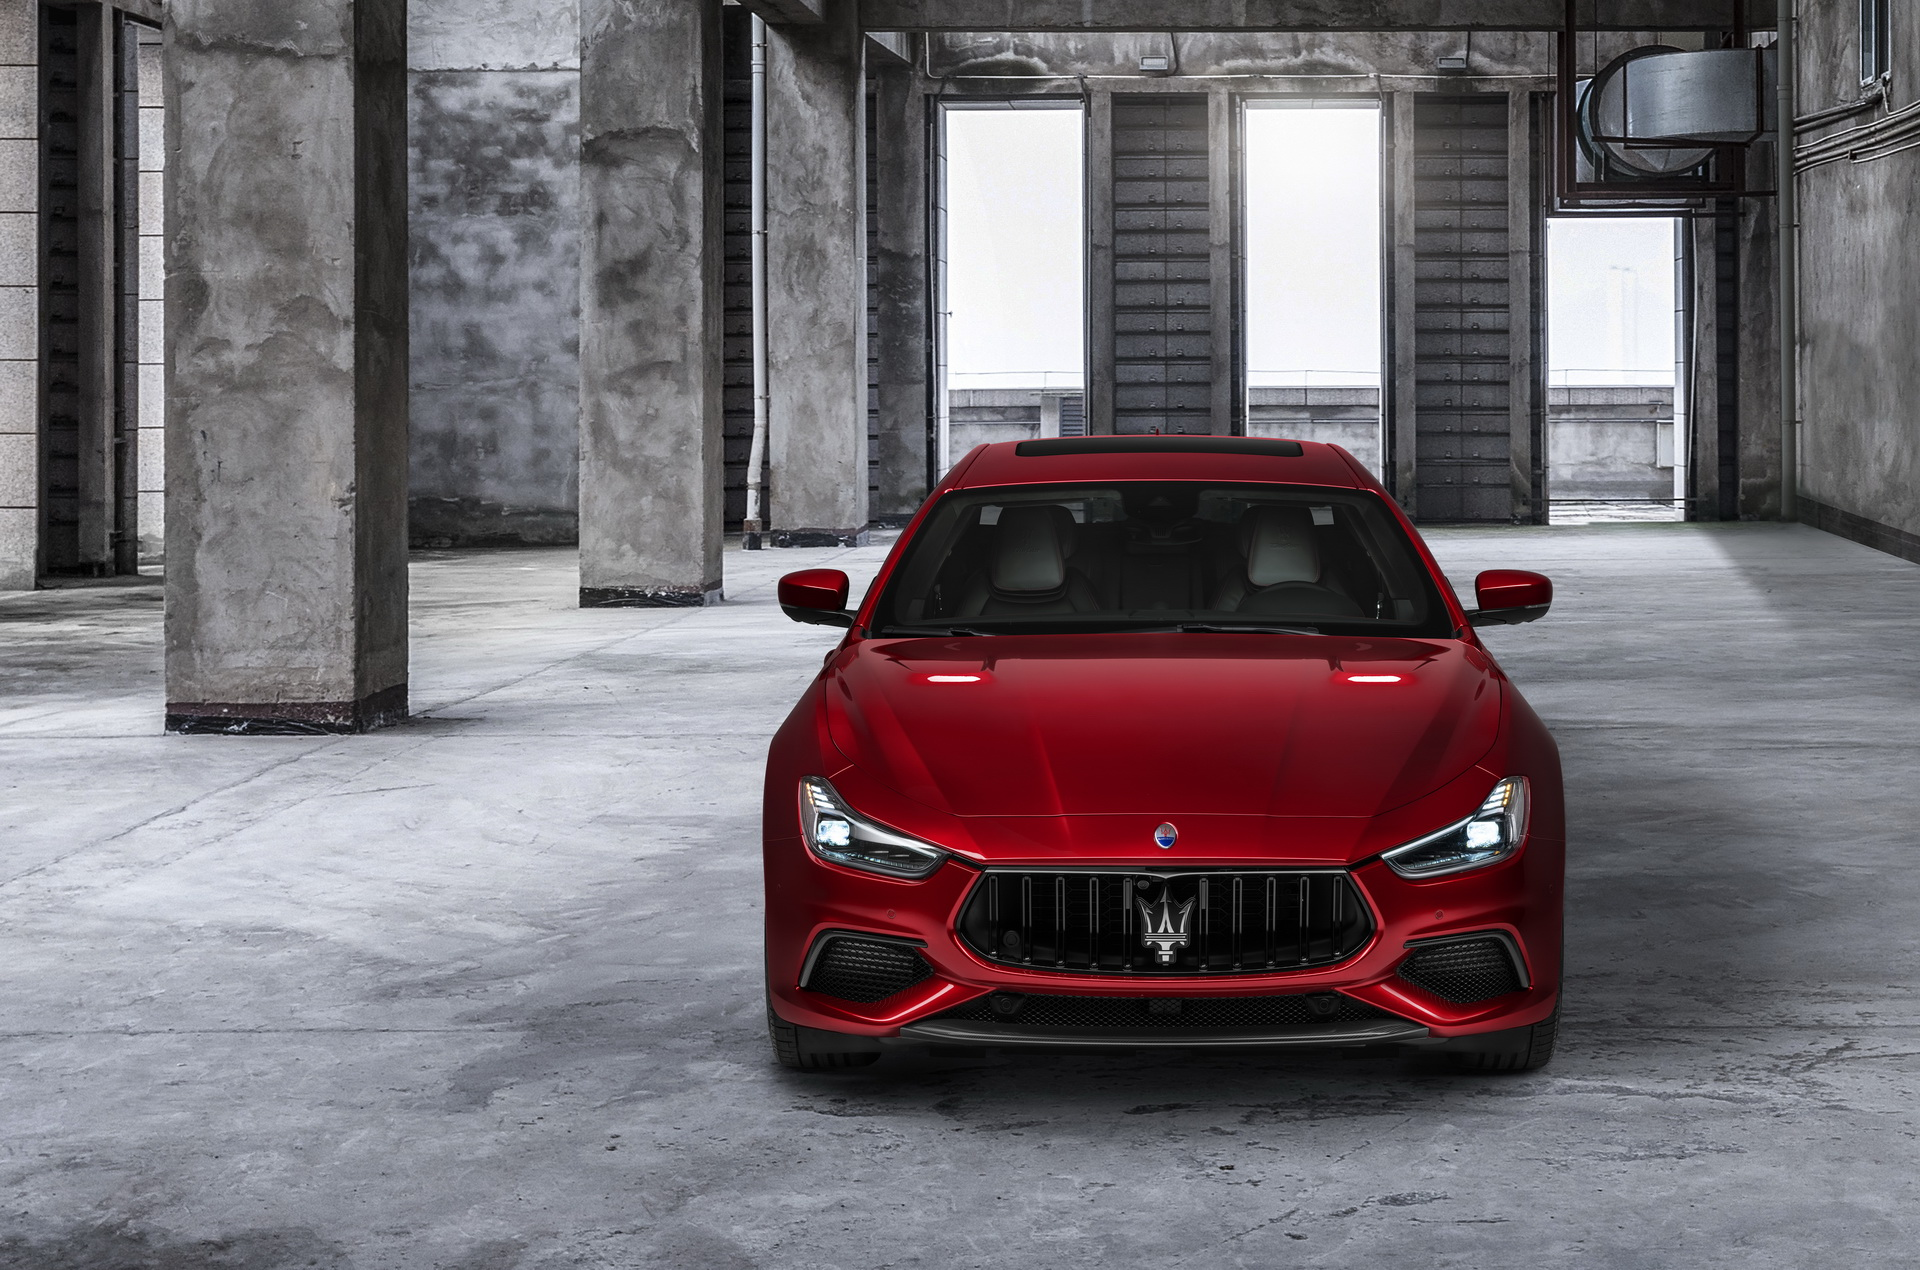 2021 Maserati Ghibli Trofeo First Drive Review: Lust And Luxury